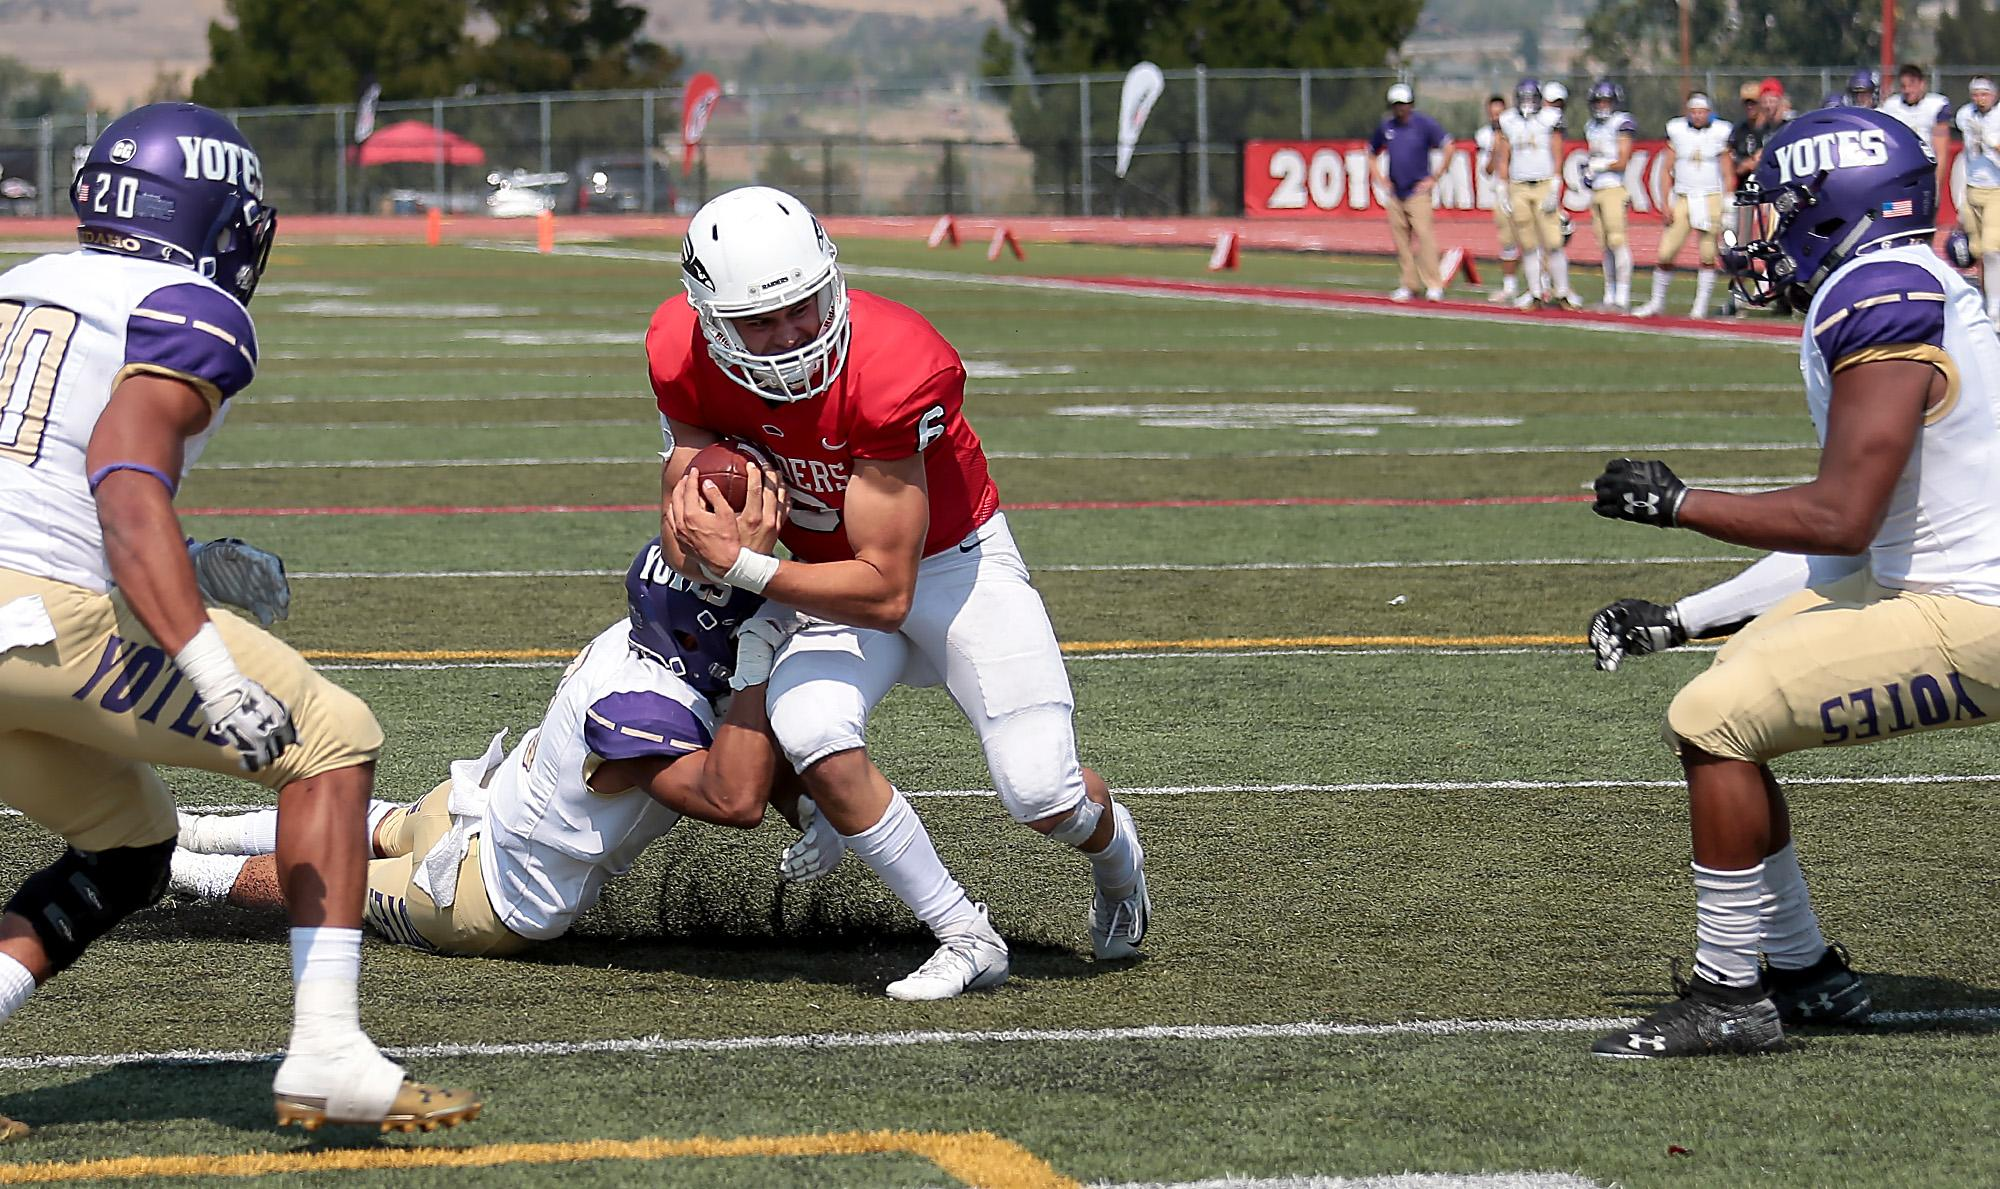 Larry Stauth Jr./For the Daily Tidings<br>Southern Oregon University sophomore quarterback Wyatt Hutchinson fights through College of Idaho defenders and into the end zone for a second-quarter touchdown at Raider Stadium on Saturday.